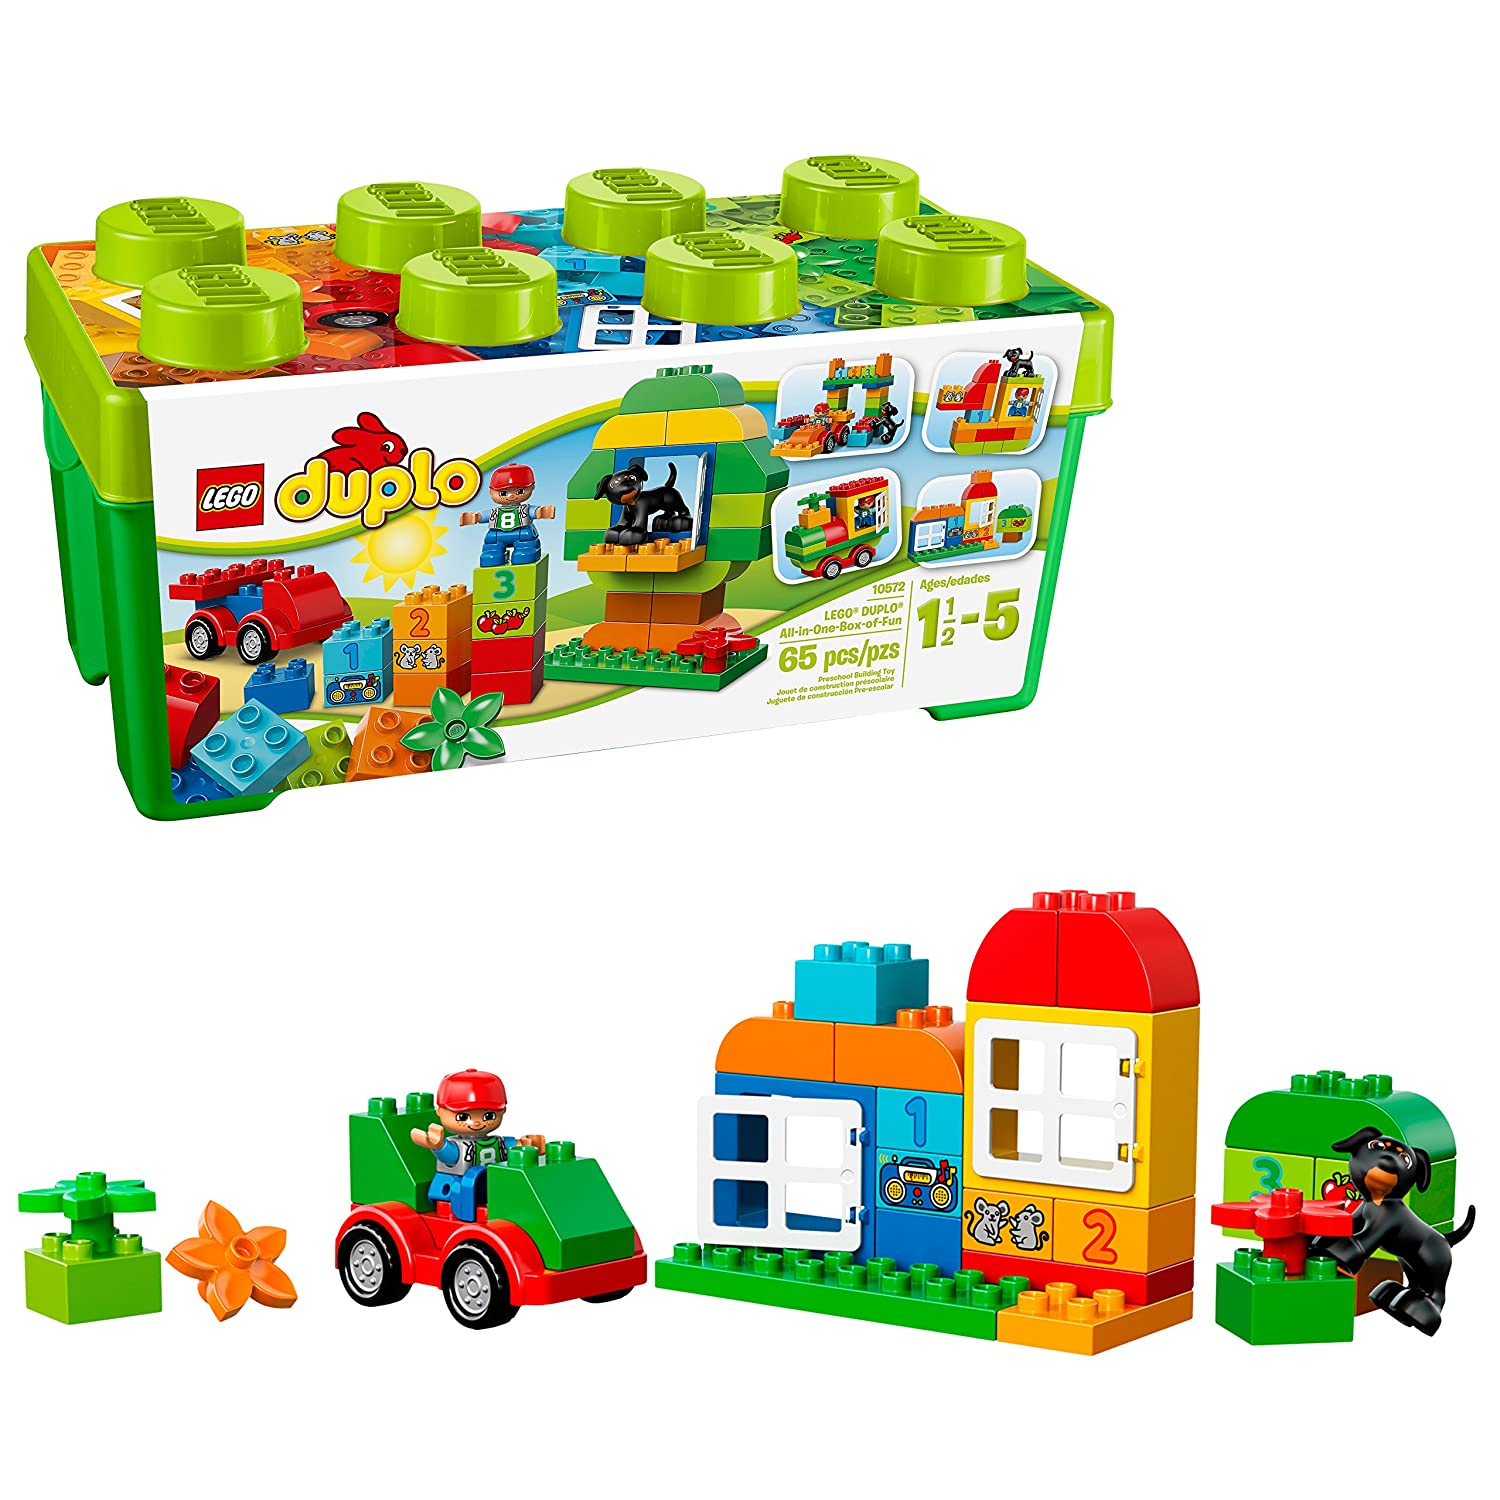 Top 9 Best Lego Duplo Sets Reviews in 2019 3